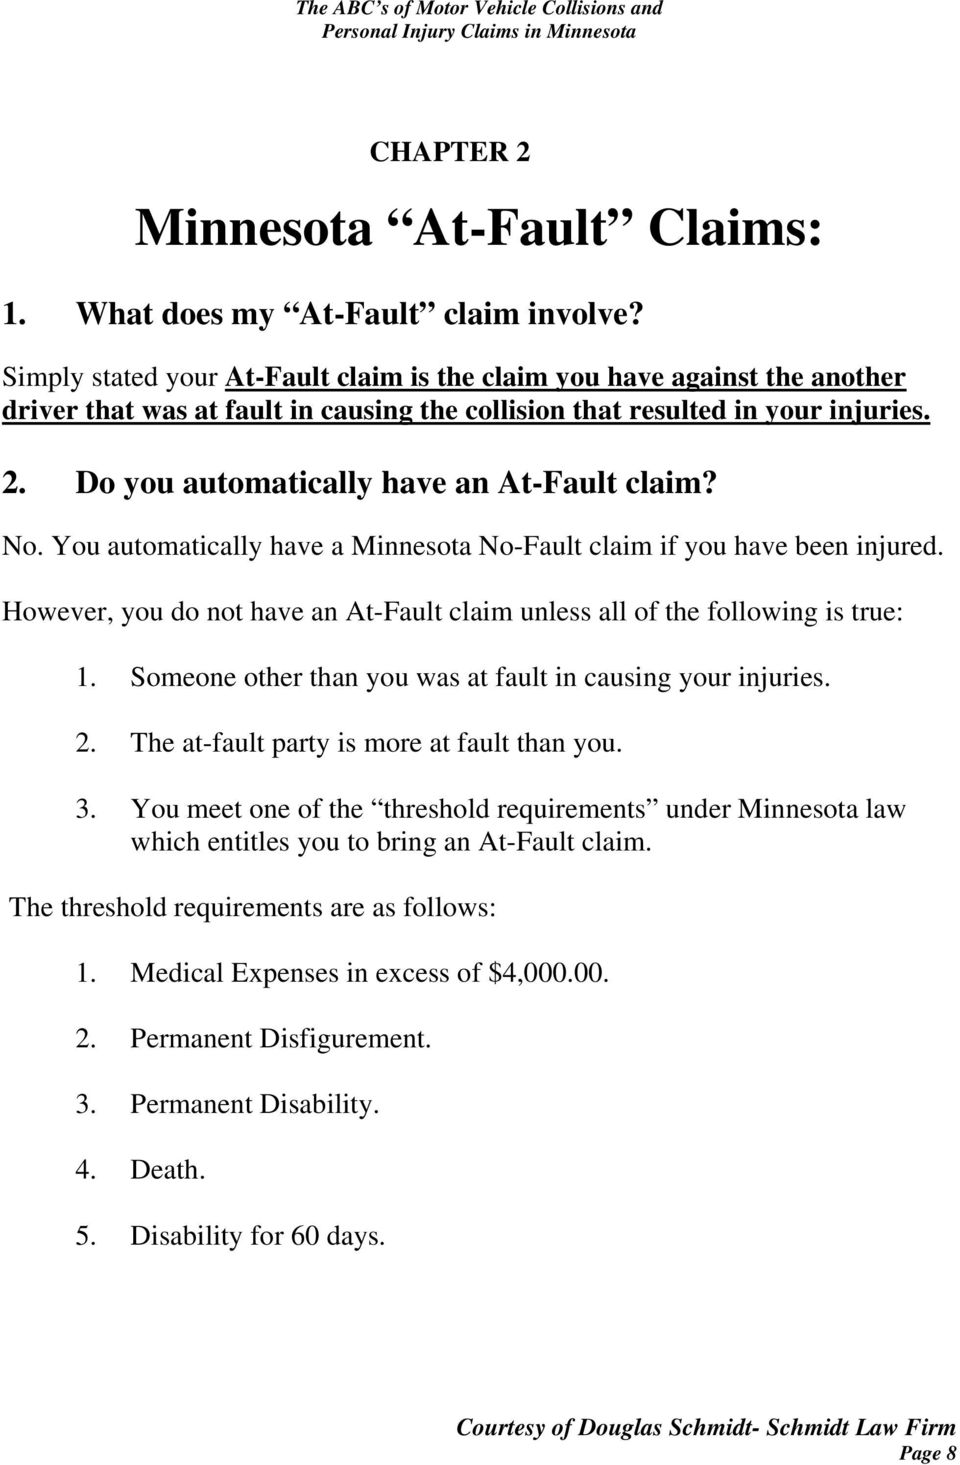 Do you automatically have an At-Fault claim? No. You automatically have a Minnesota No-Fault claim if you have been injured.